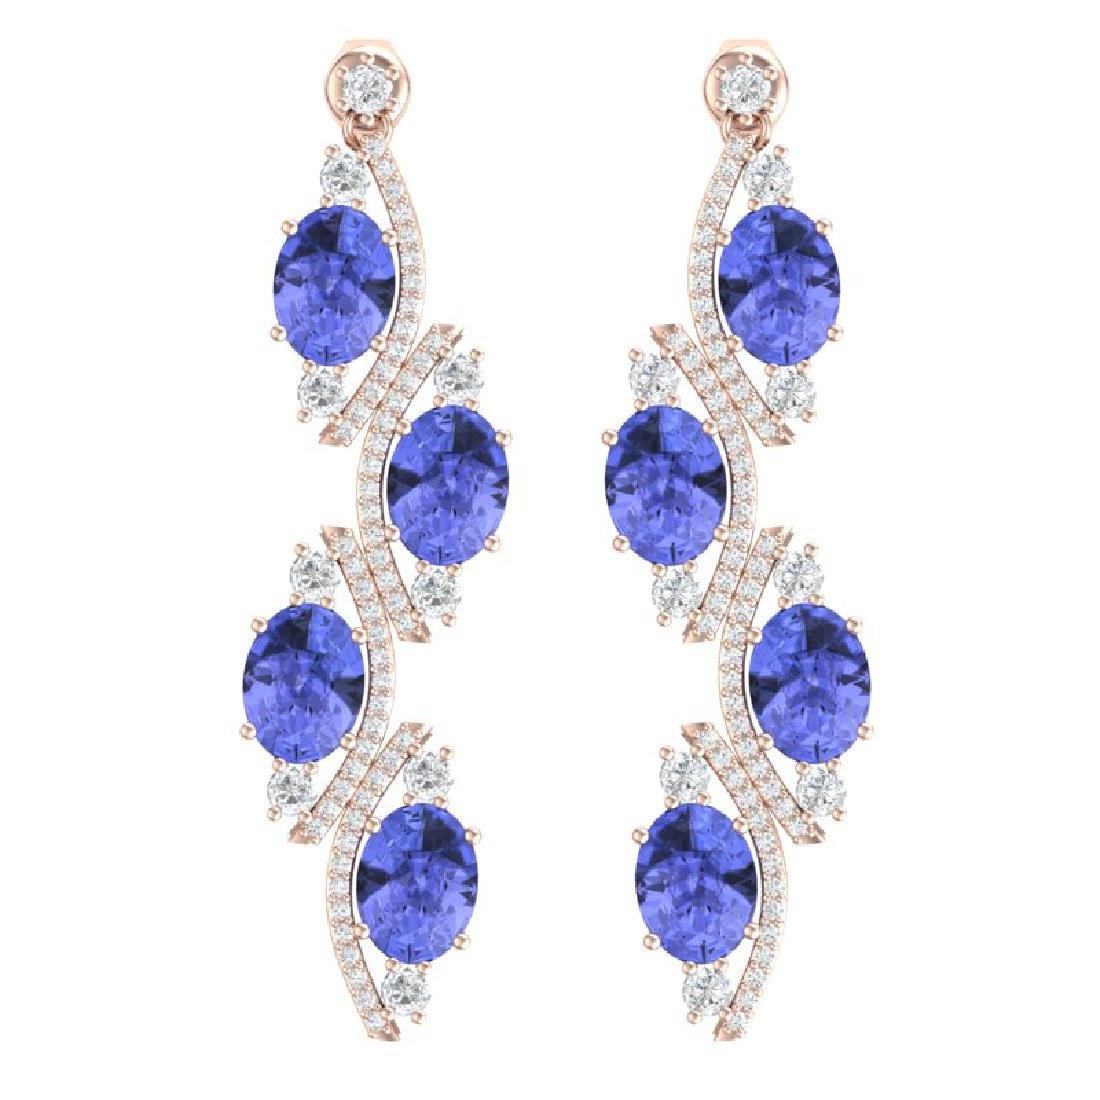 16.23 CTW Royalty Tanzanite & VS Diamond Earrings 18K